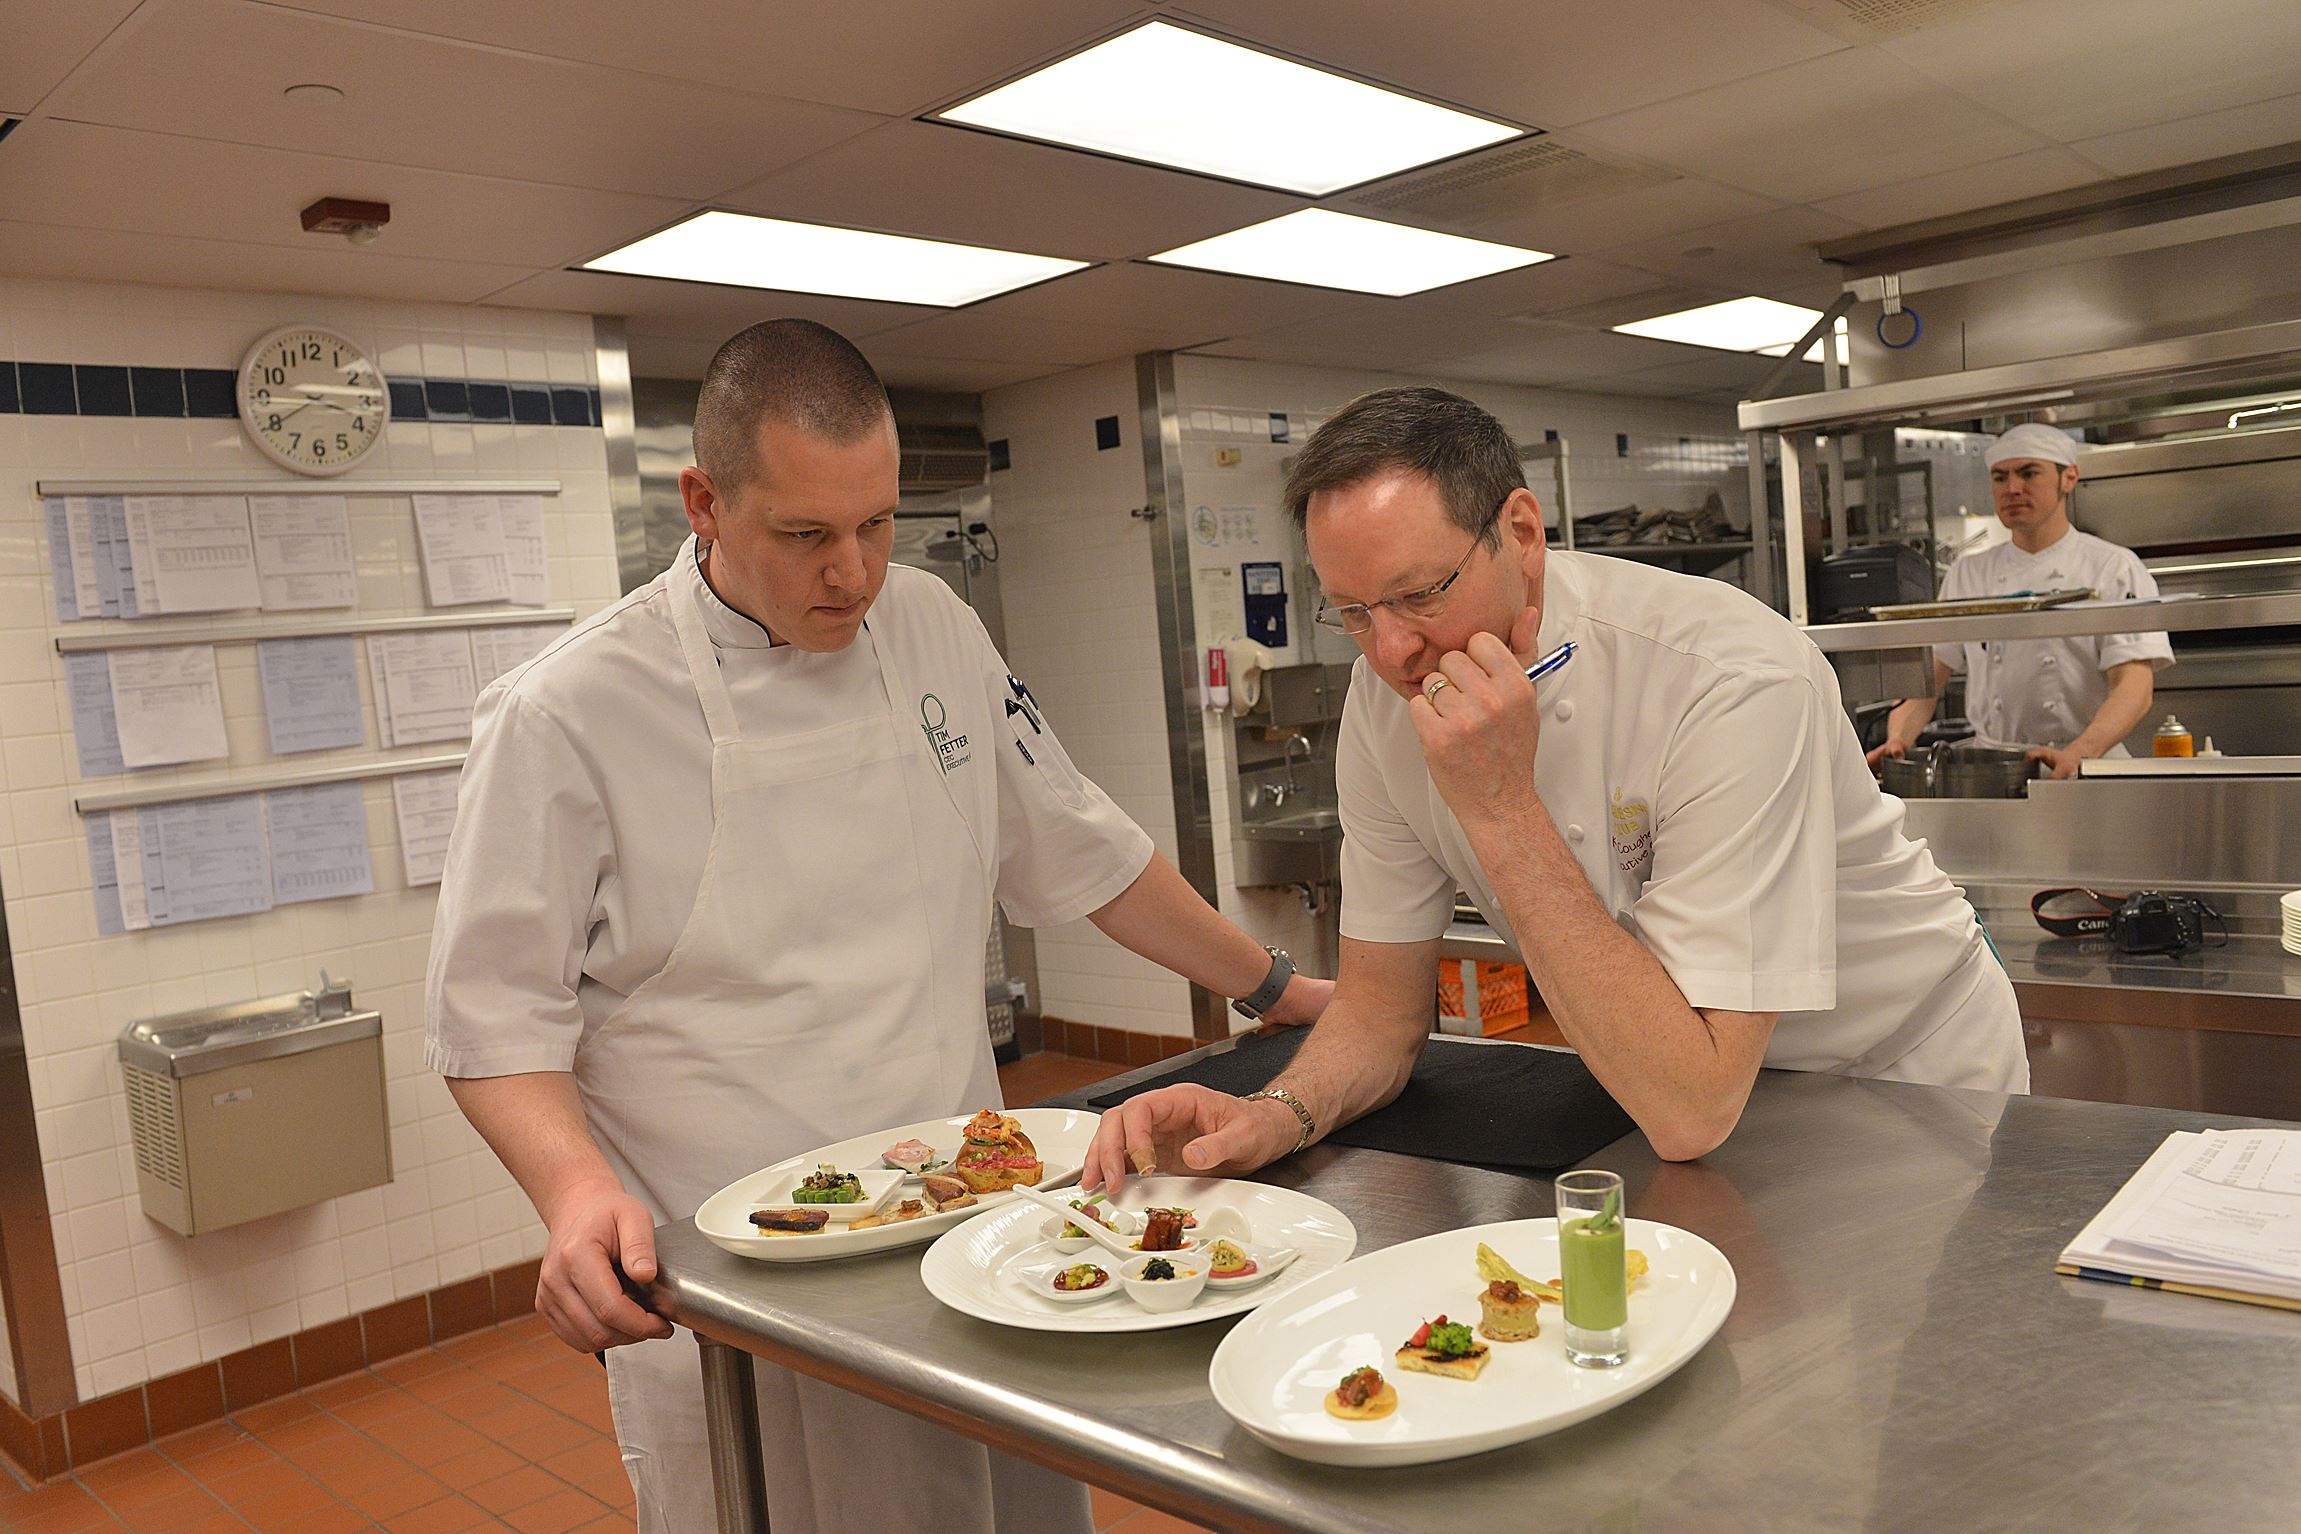 20140408lrkellerfood16 Chefs Tim Fetter and Keith Coughenour review food choices during a planning session at the Duquesne Club for a dinner honoring Thomas Keller.